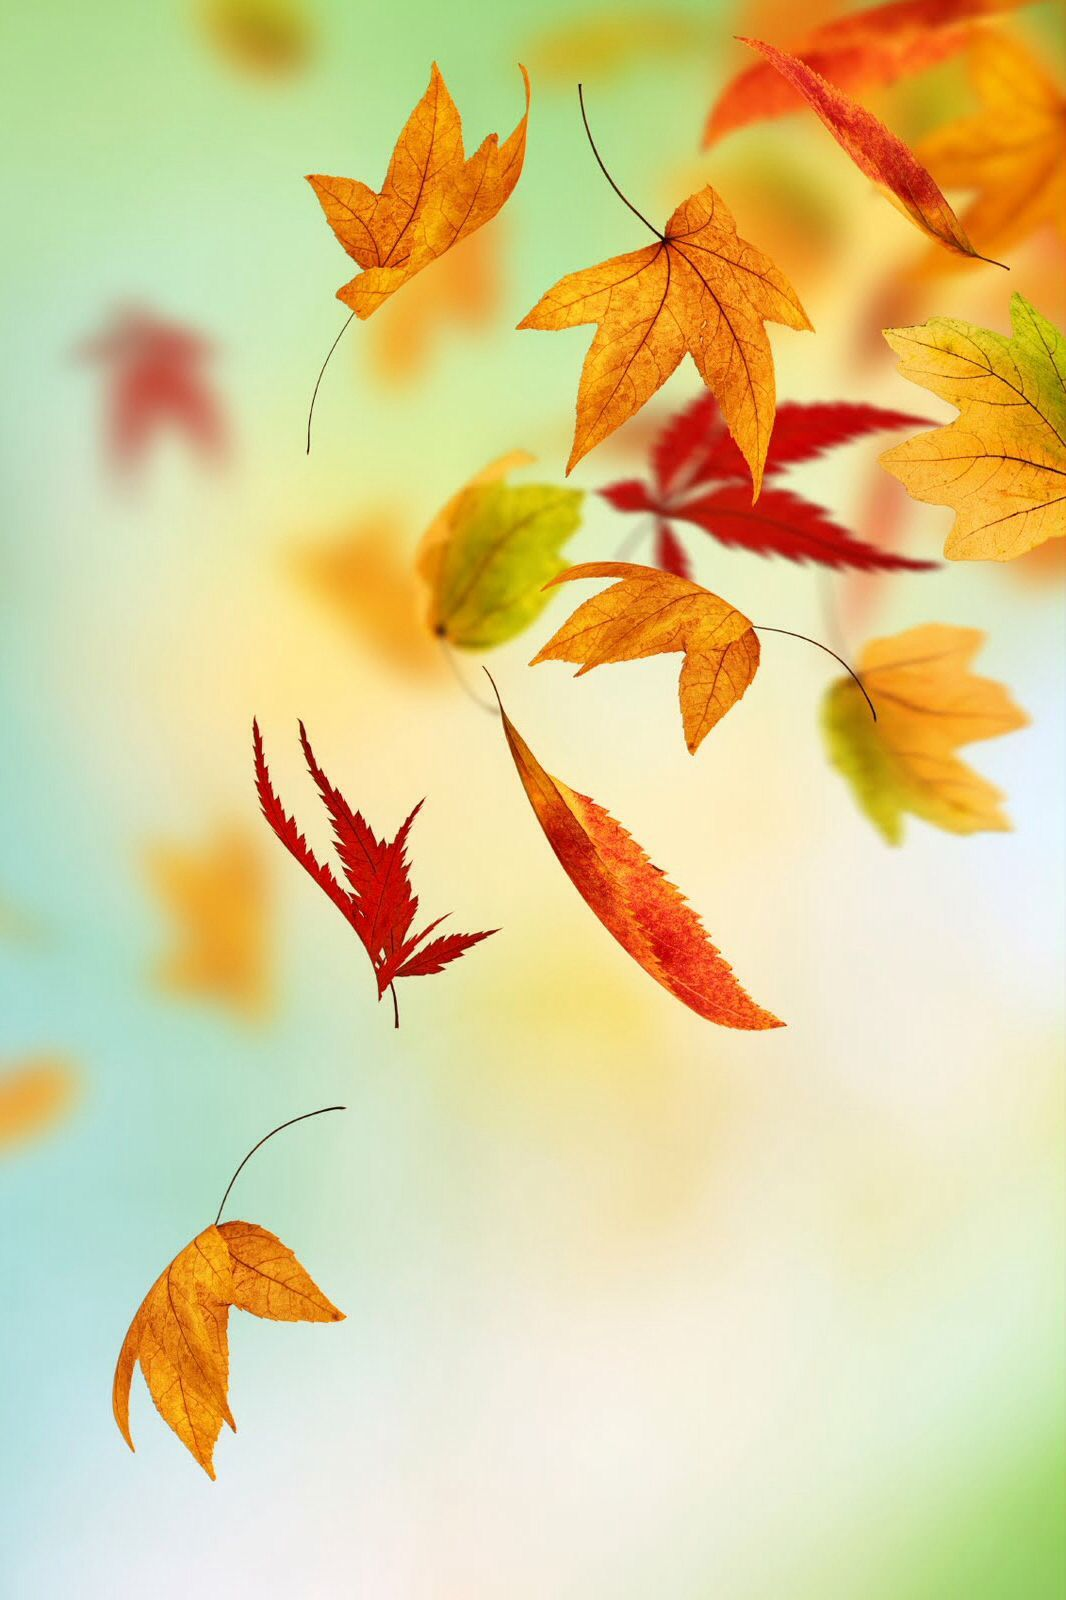 Most Inspiring Fall Wallpaper For Iphone - 3349865d2790be6ea5a20ed869e7a8a6  Trends_1007736.jpg